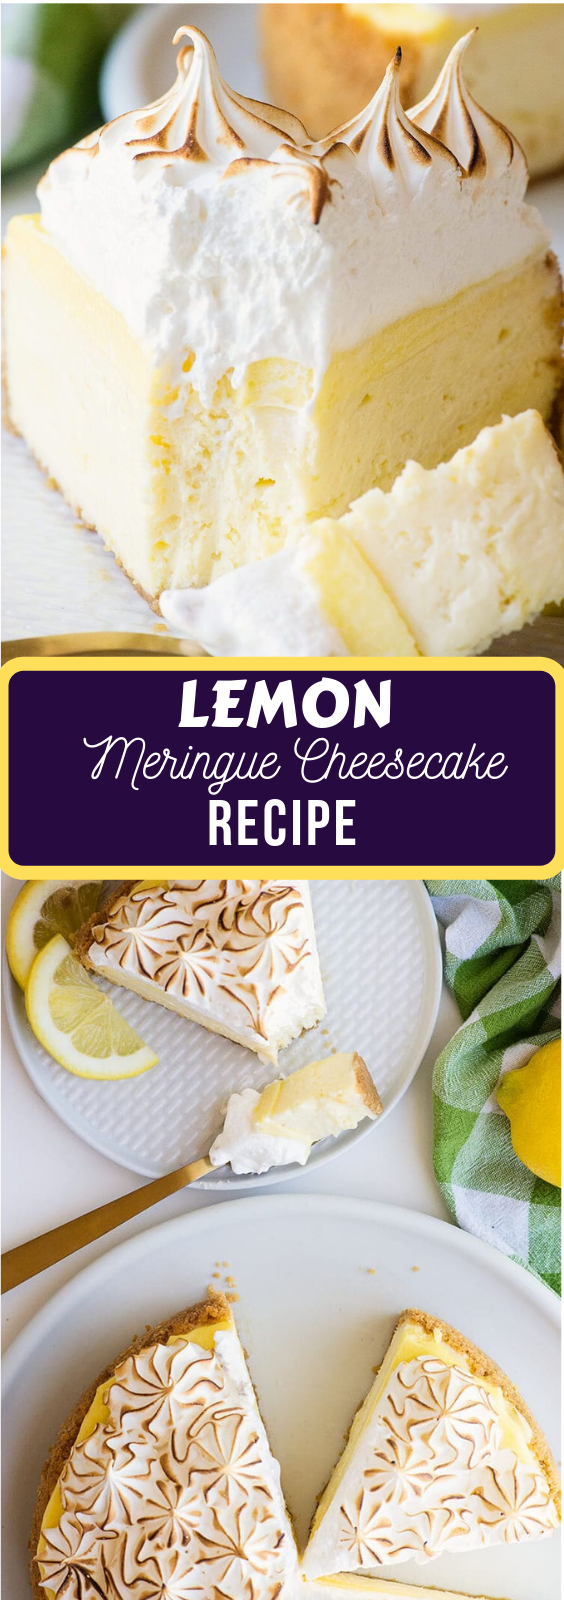 Lemon Meringue Cheesecake Recipe #lemonmeringuecheesecake